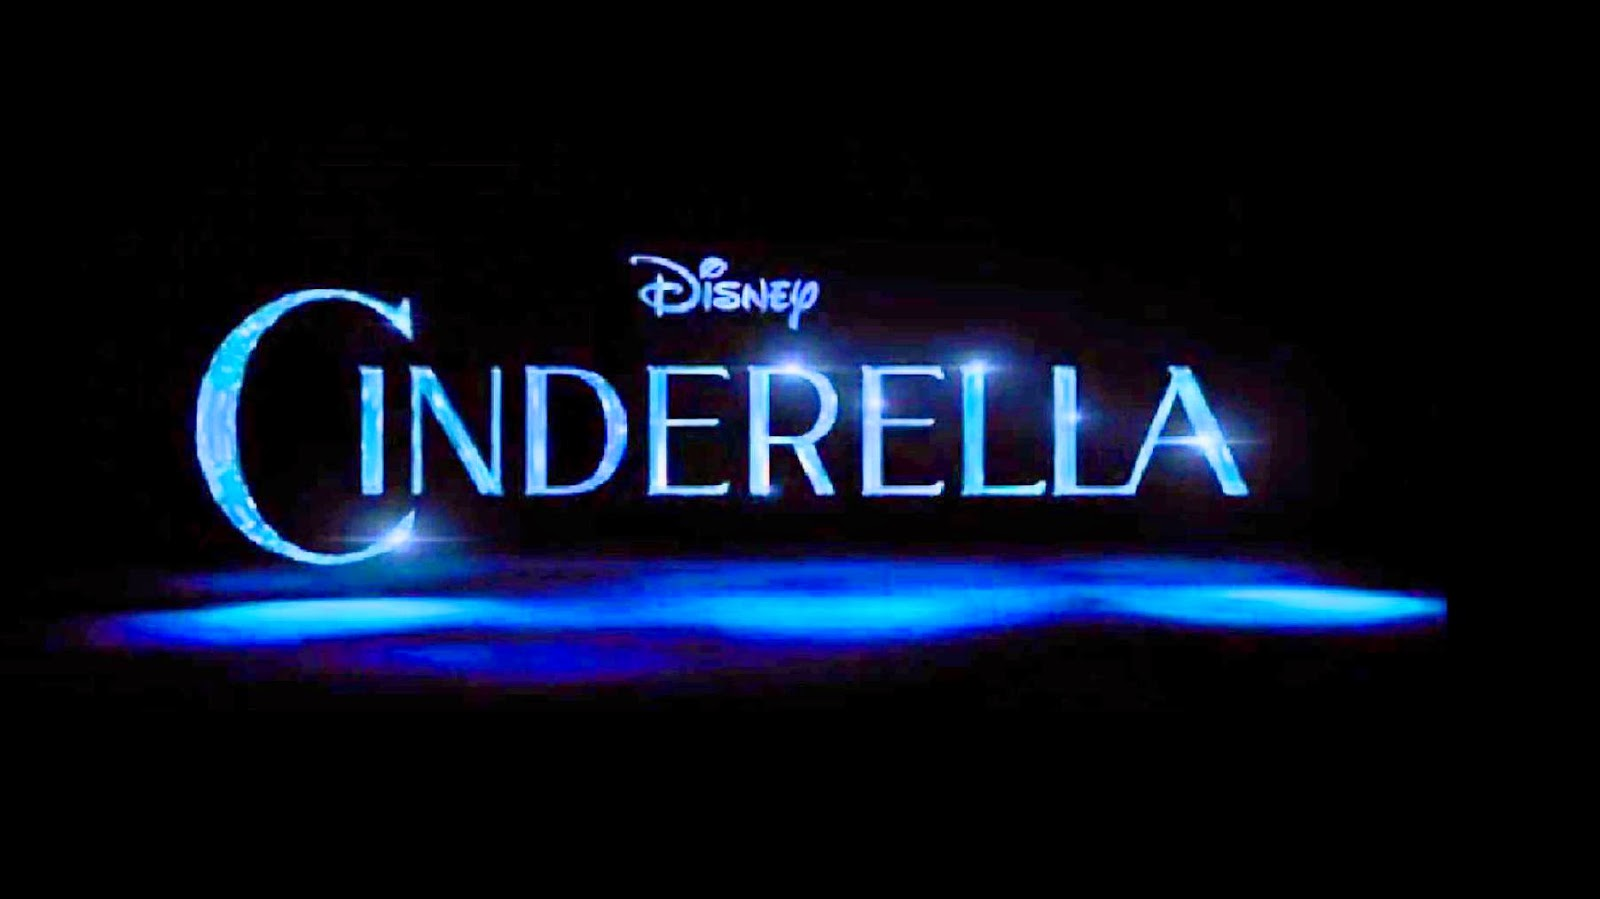 Cinderella 2015 Movie Free Video